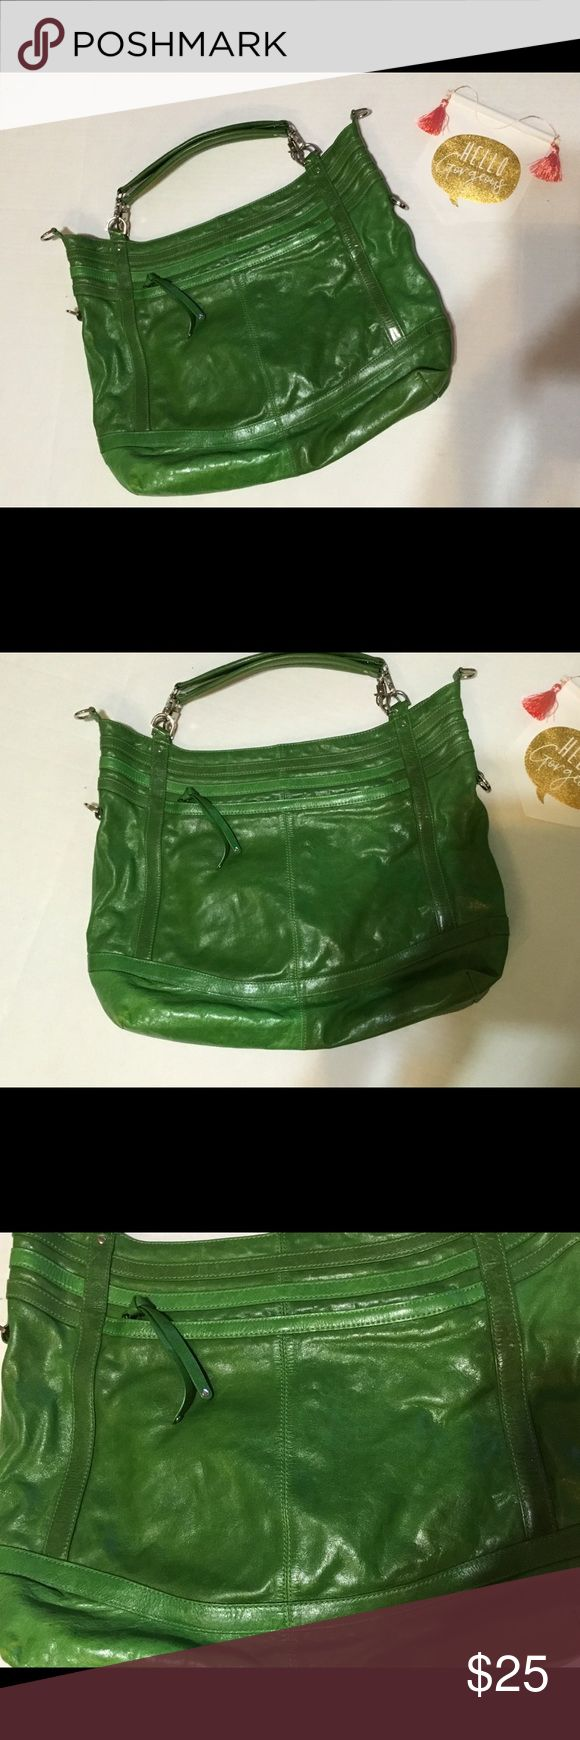 """🍀 XL green bag from Marc NY Andrew Marc 🍀 XL green bag from Marc NY Andrew Marc.  Just in time for St. Patrick's Day!! Plenty of room for all of your gear!  15 x 19 x 5.  Strap drop 7"""".  Super cute and CLEAN! Andrew Marc Bags"""